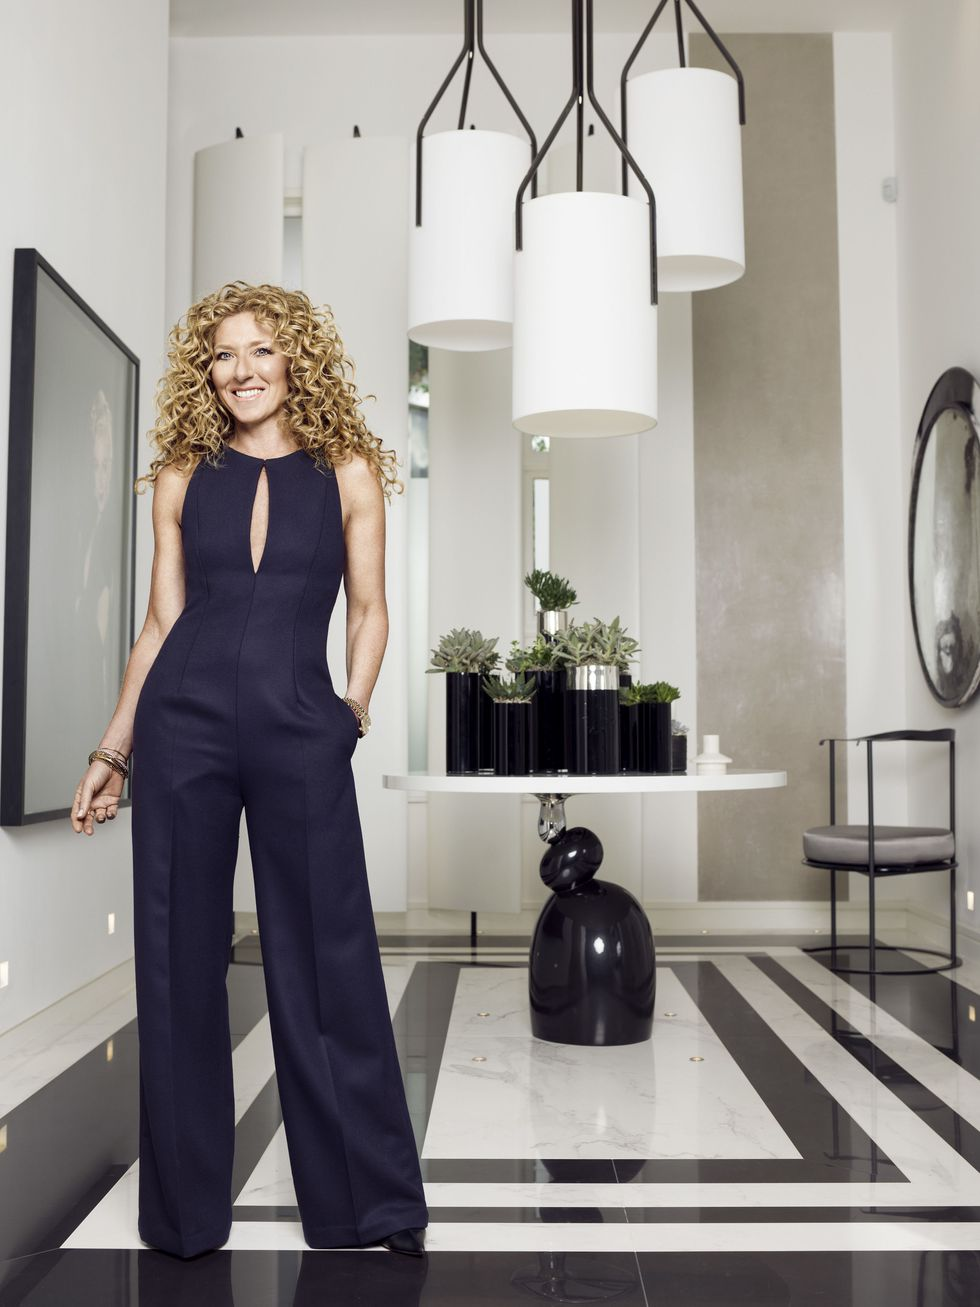 Famous interior designers - Kelly Hoppen - best interior designers in south africa - women empowerment & Leading Ladies of Design: 20 Famous Interior Designers \u0026 Architects ...